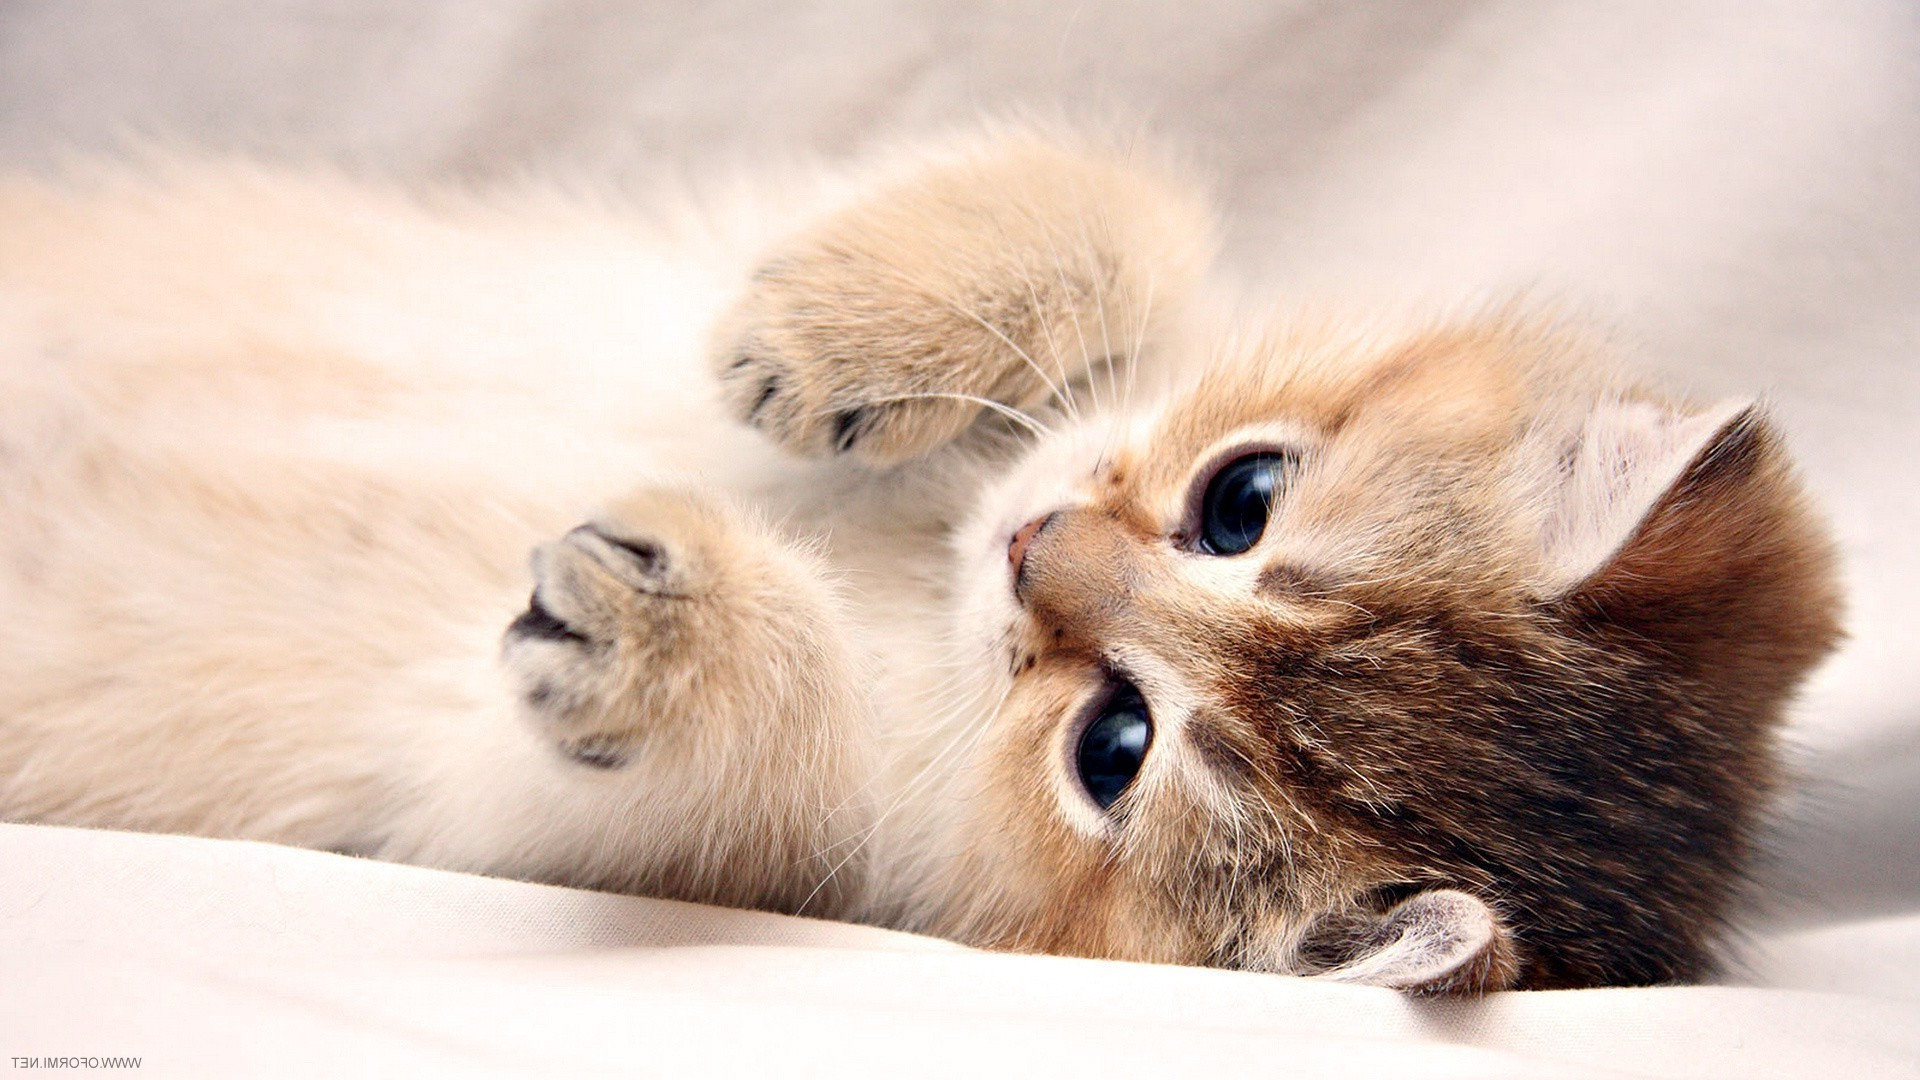 Cute Kitten Background 59 images